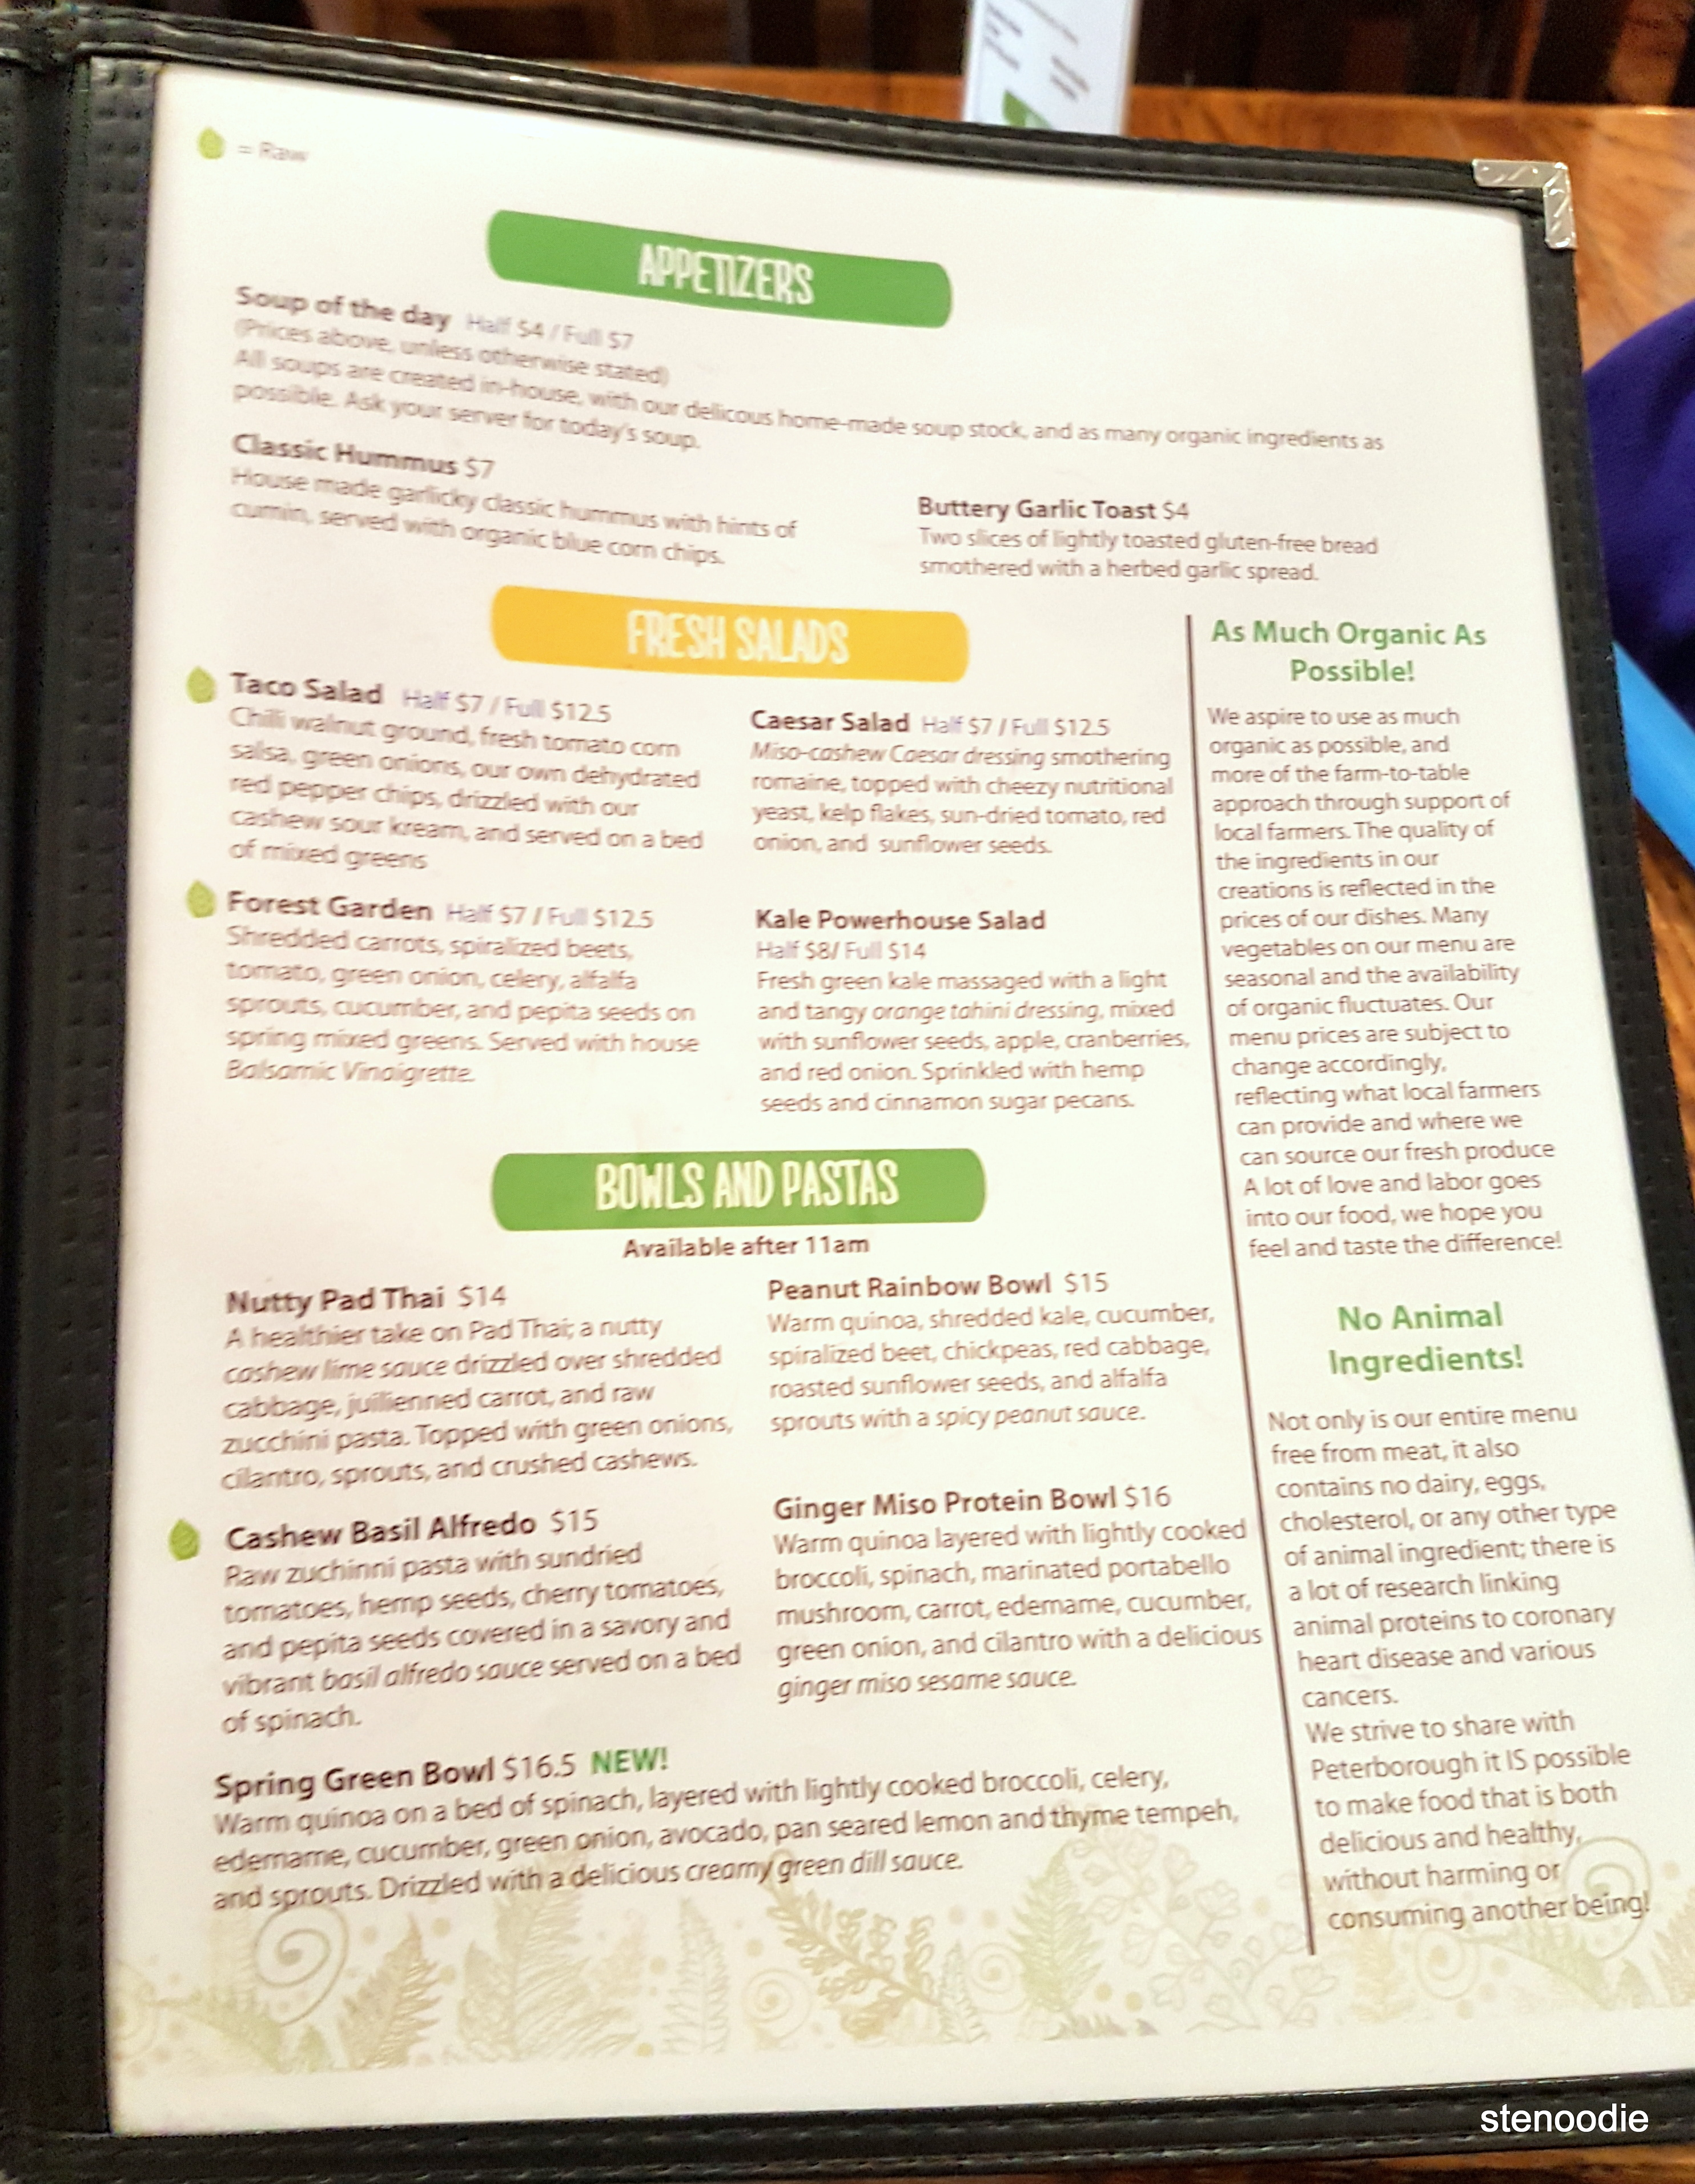 The Food Forest menu - appetizers, salads, bowls and pastas